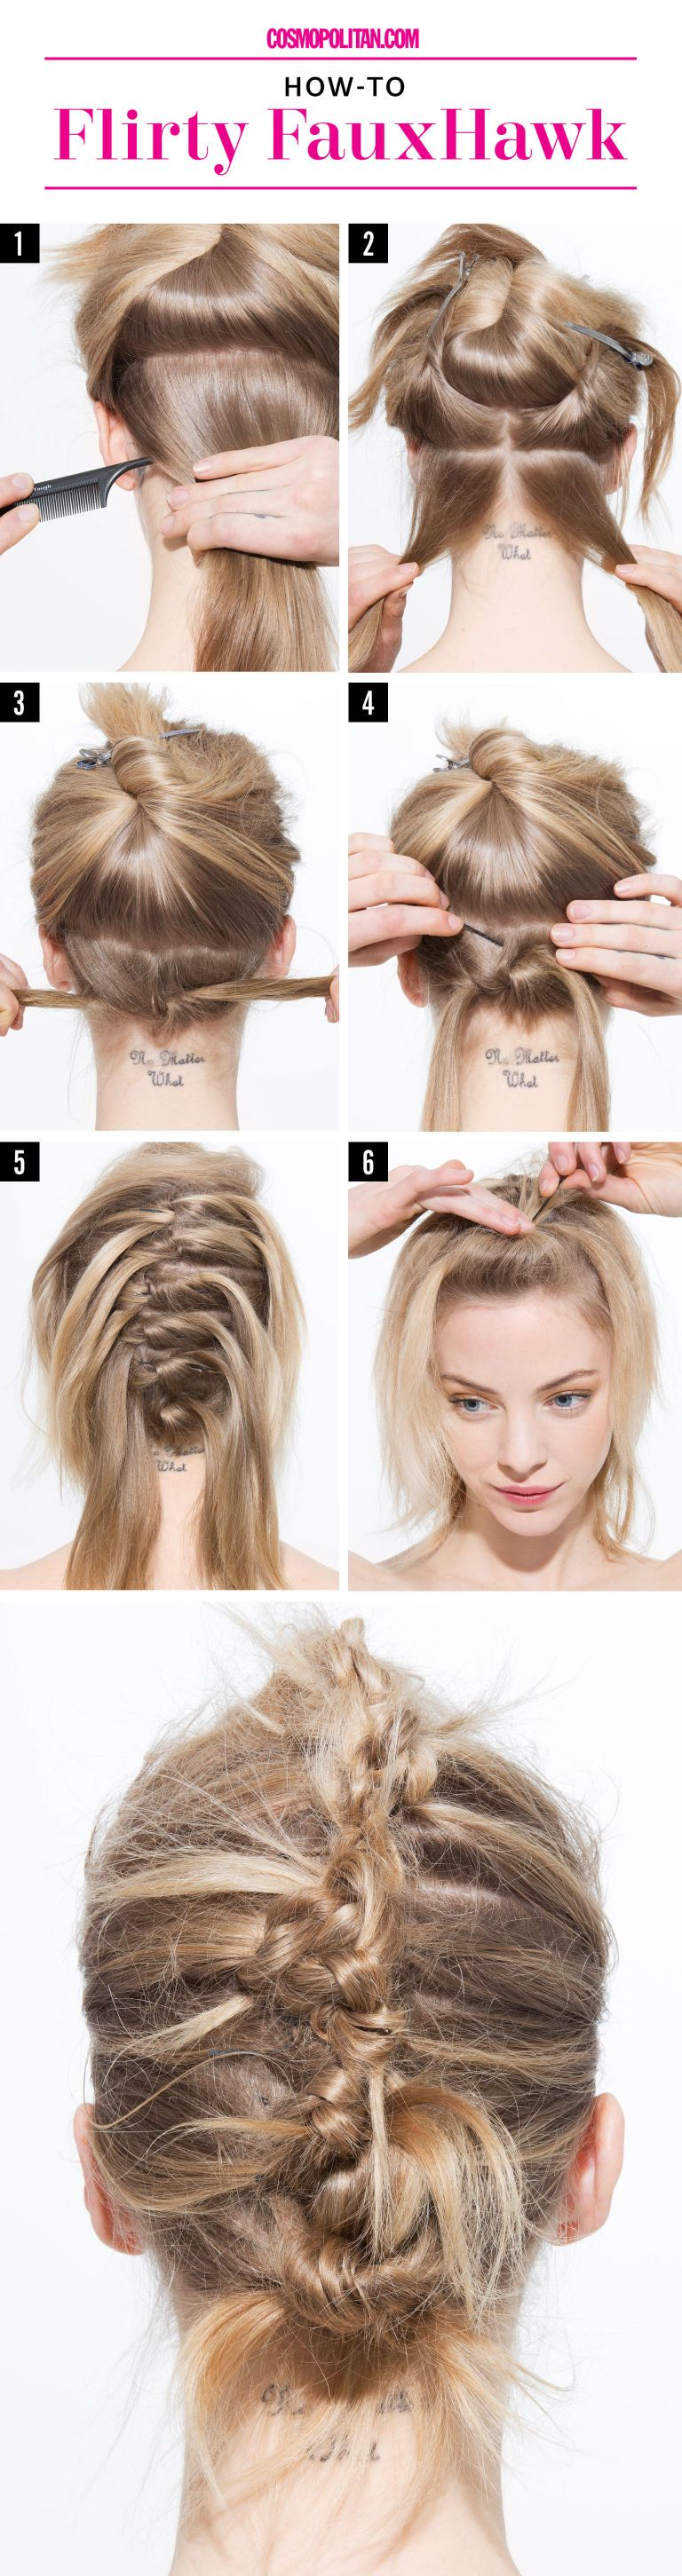 4 Last Minute DIY Evening Hairstyles That Will Leave You Looking Hot